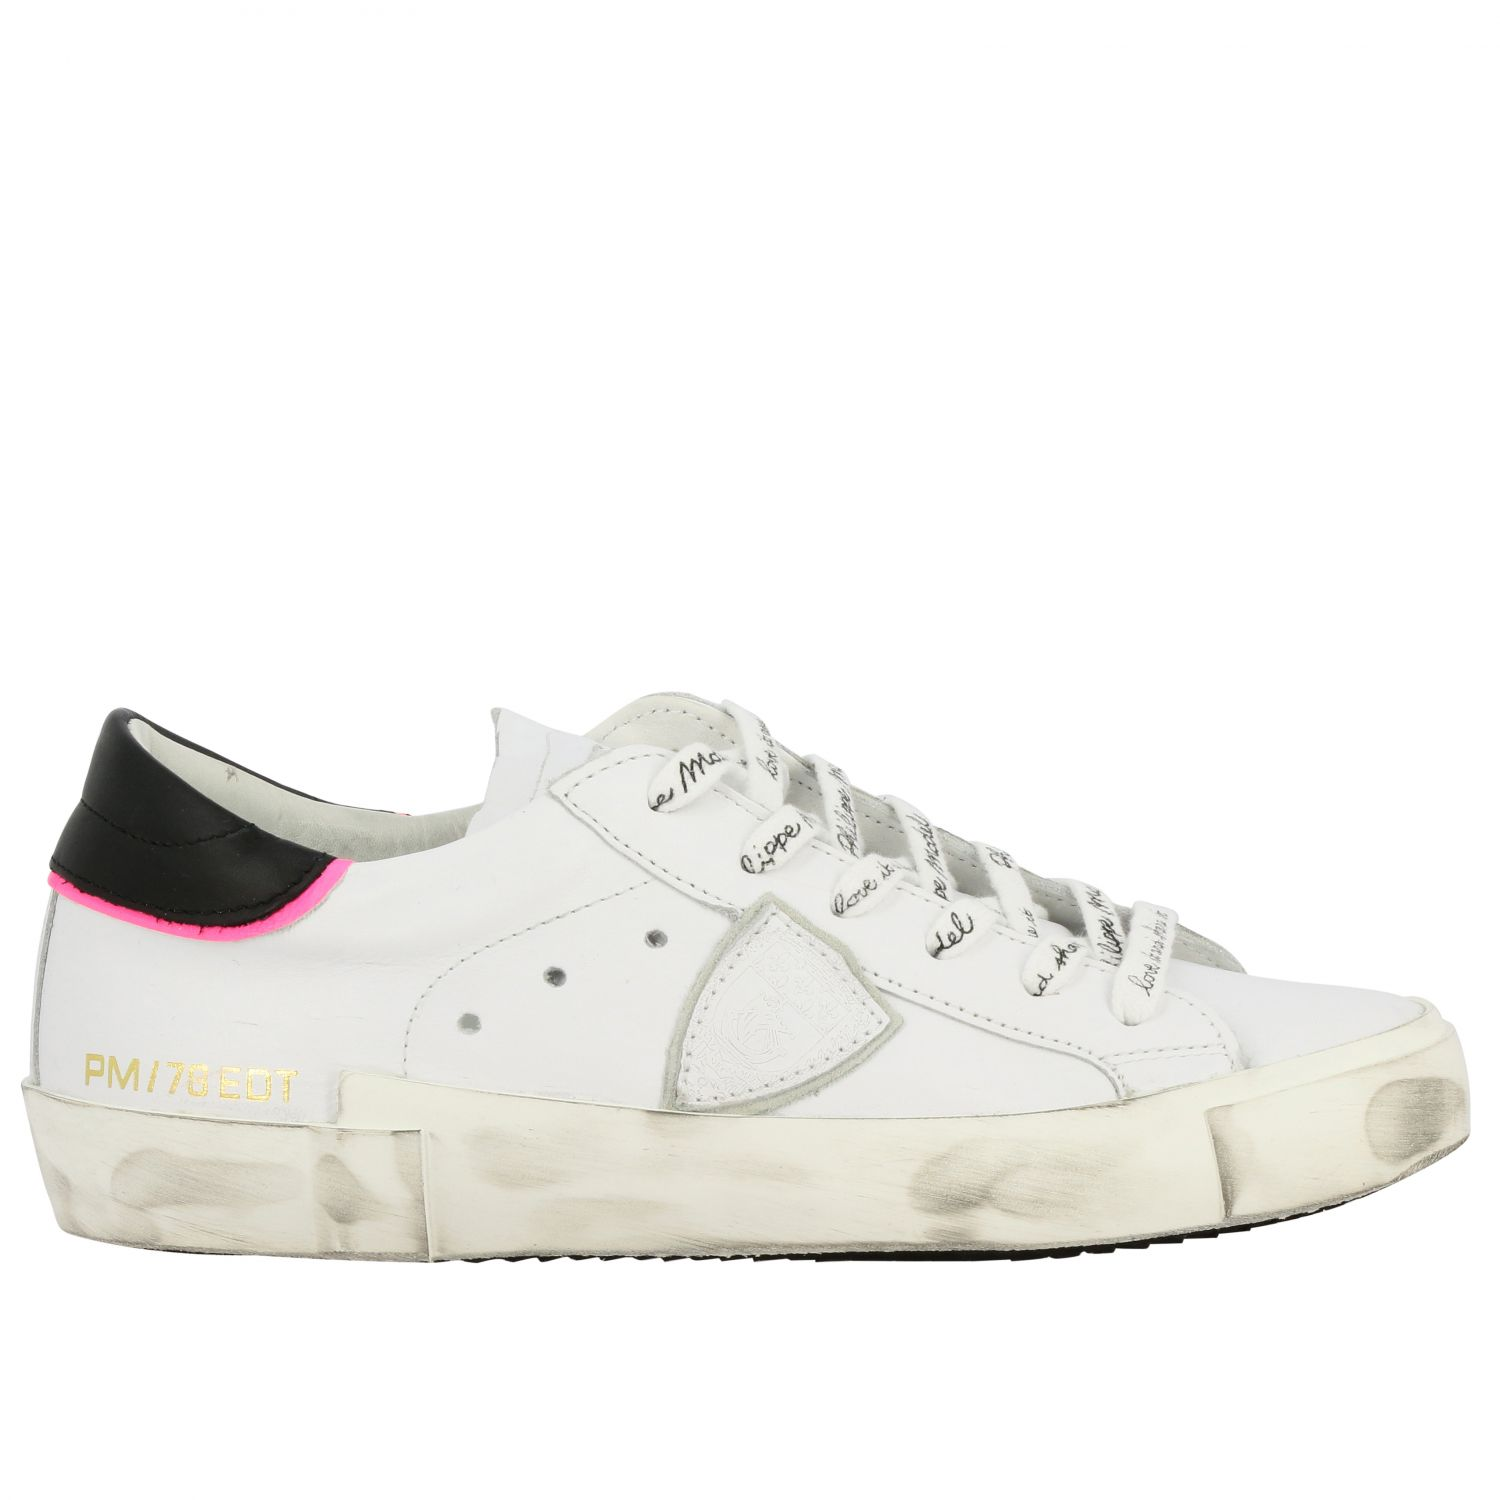 Sneakers women Philippe Model white 1